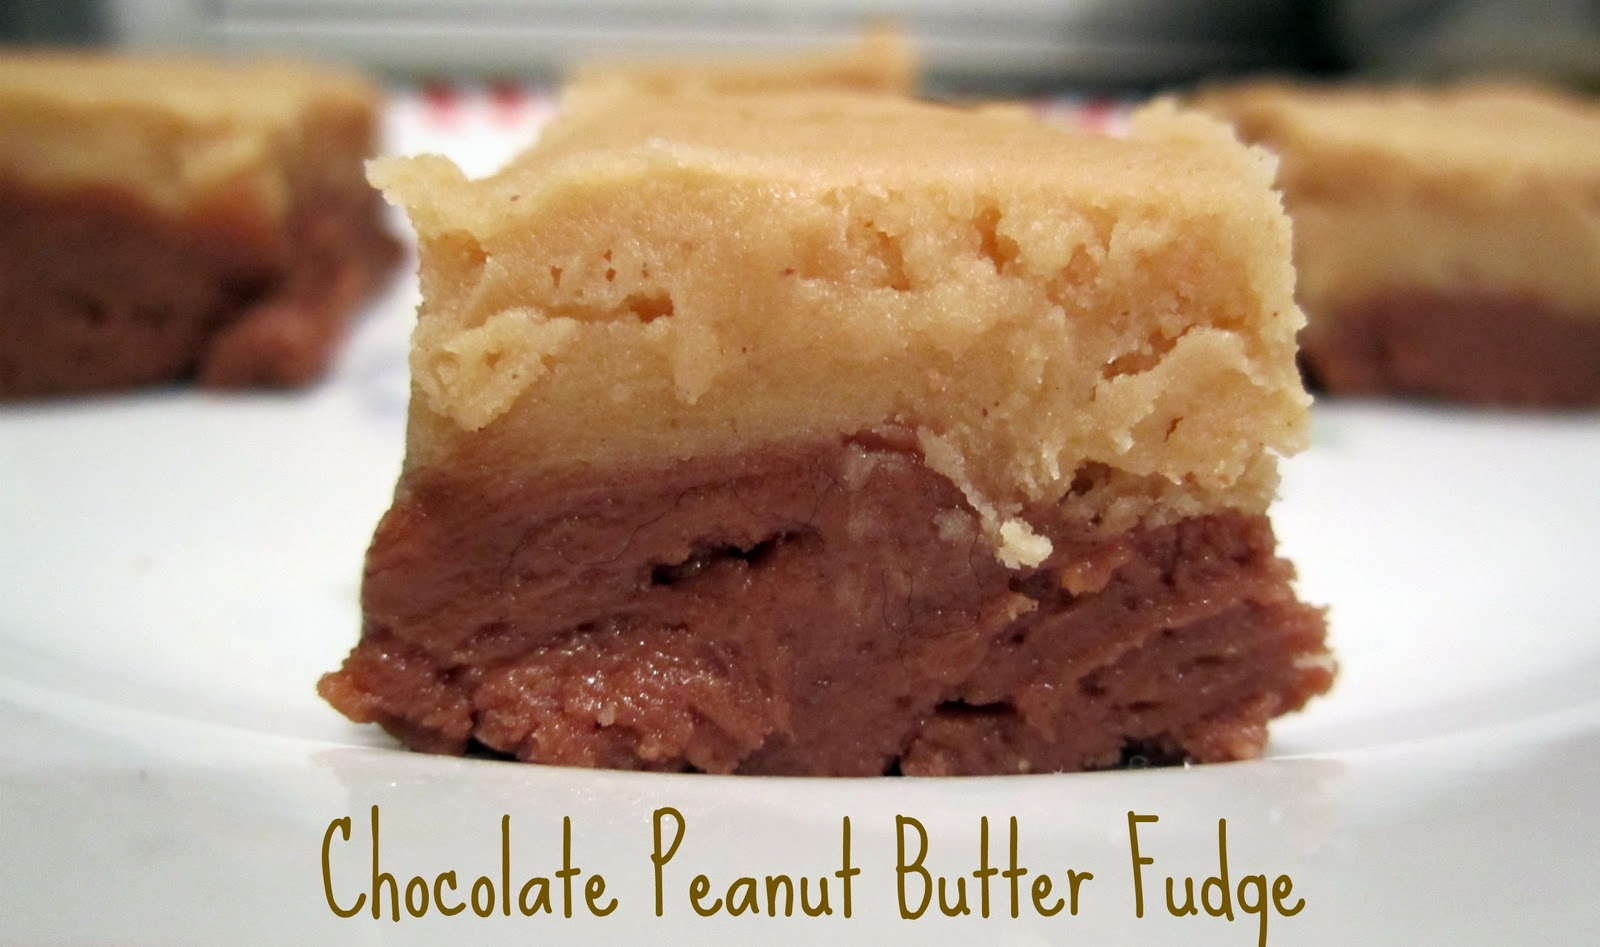 Chocolate Peanut Butter Fudge - Whats Cooking Love?